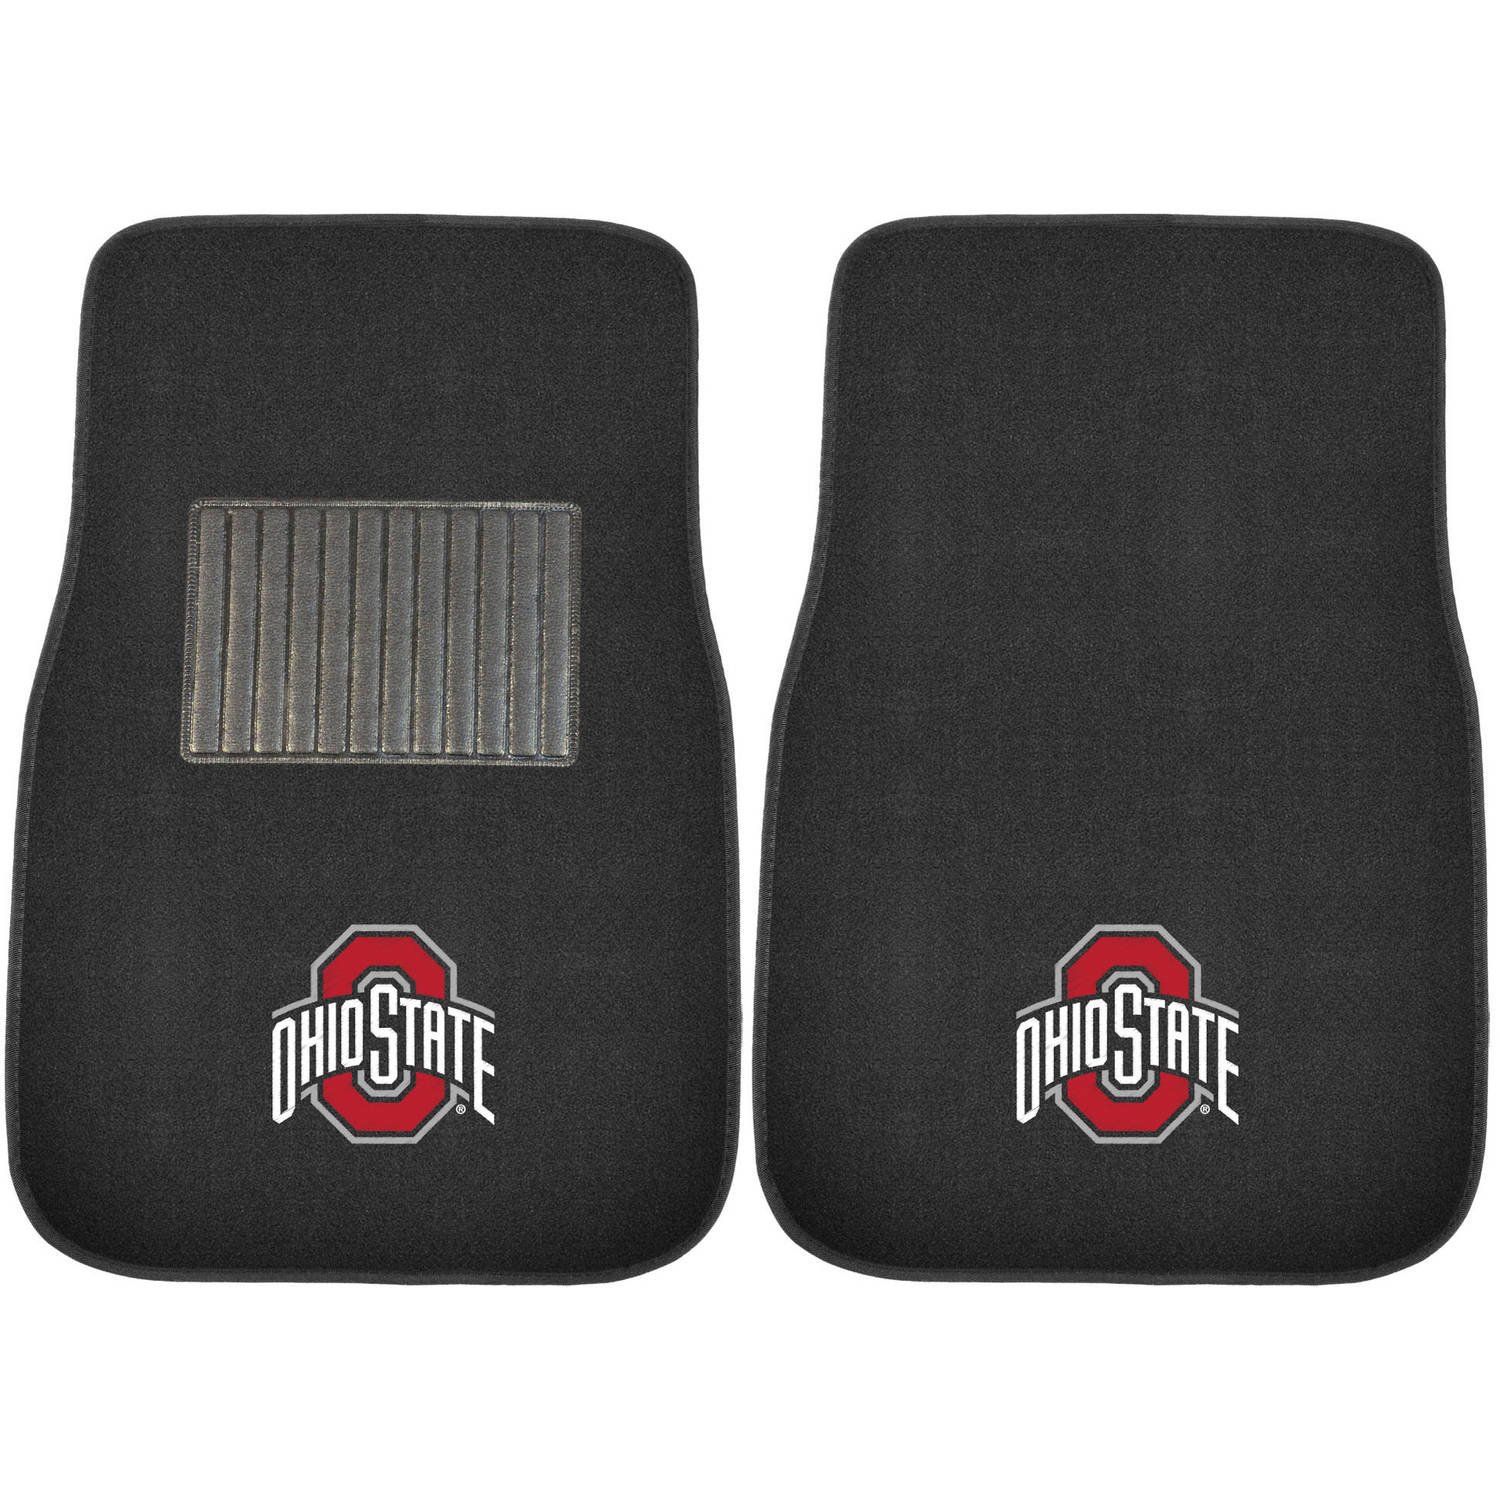 Ohio State University Embroidered Car Mats